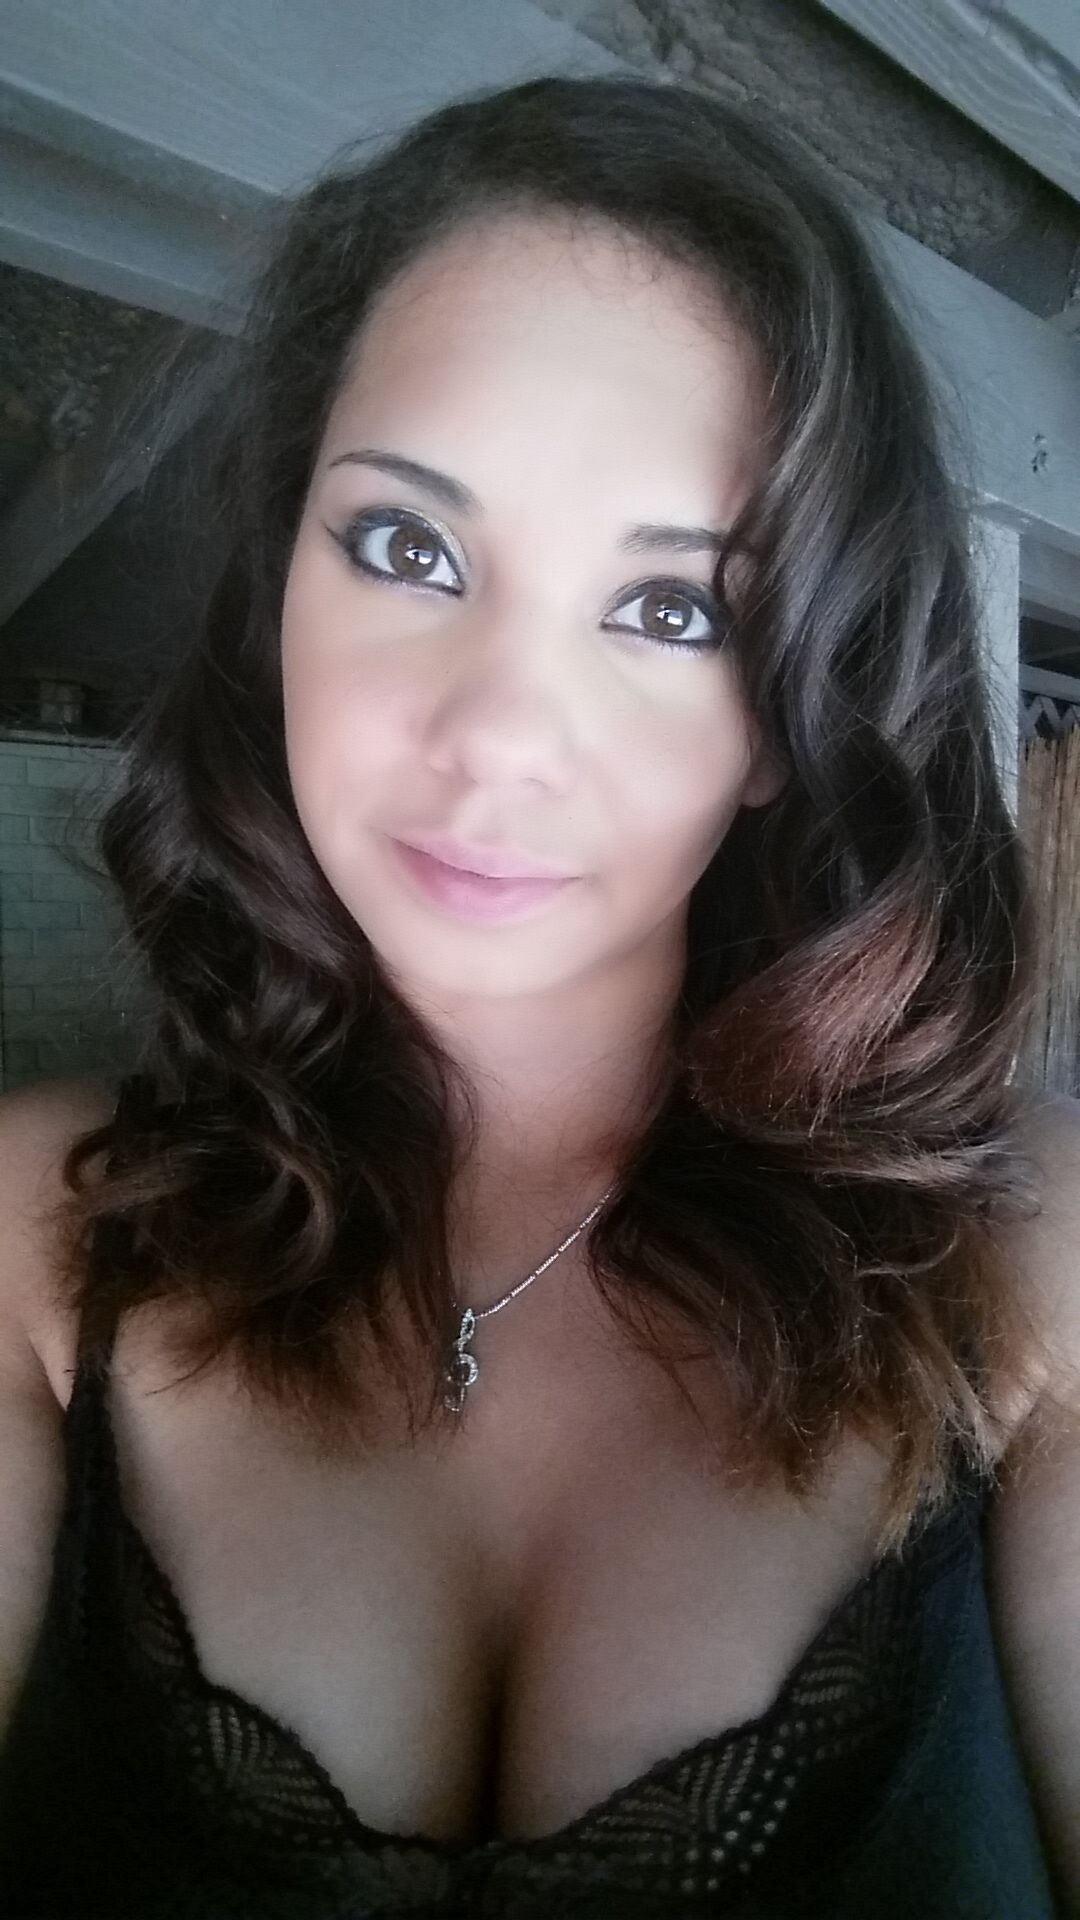 la vergne milf women All amature-photos-of-women-in-pennsylvania porn tube movies hottest video: lingerie beauty has a hamburger pussy.